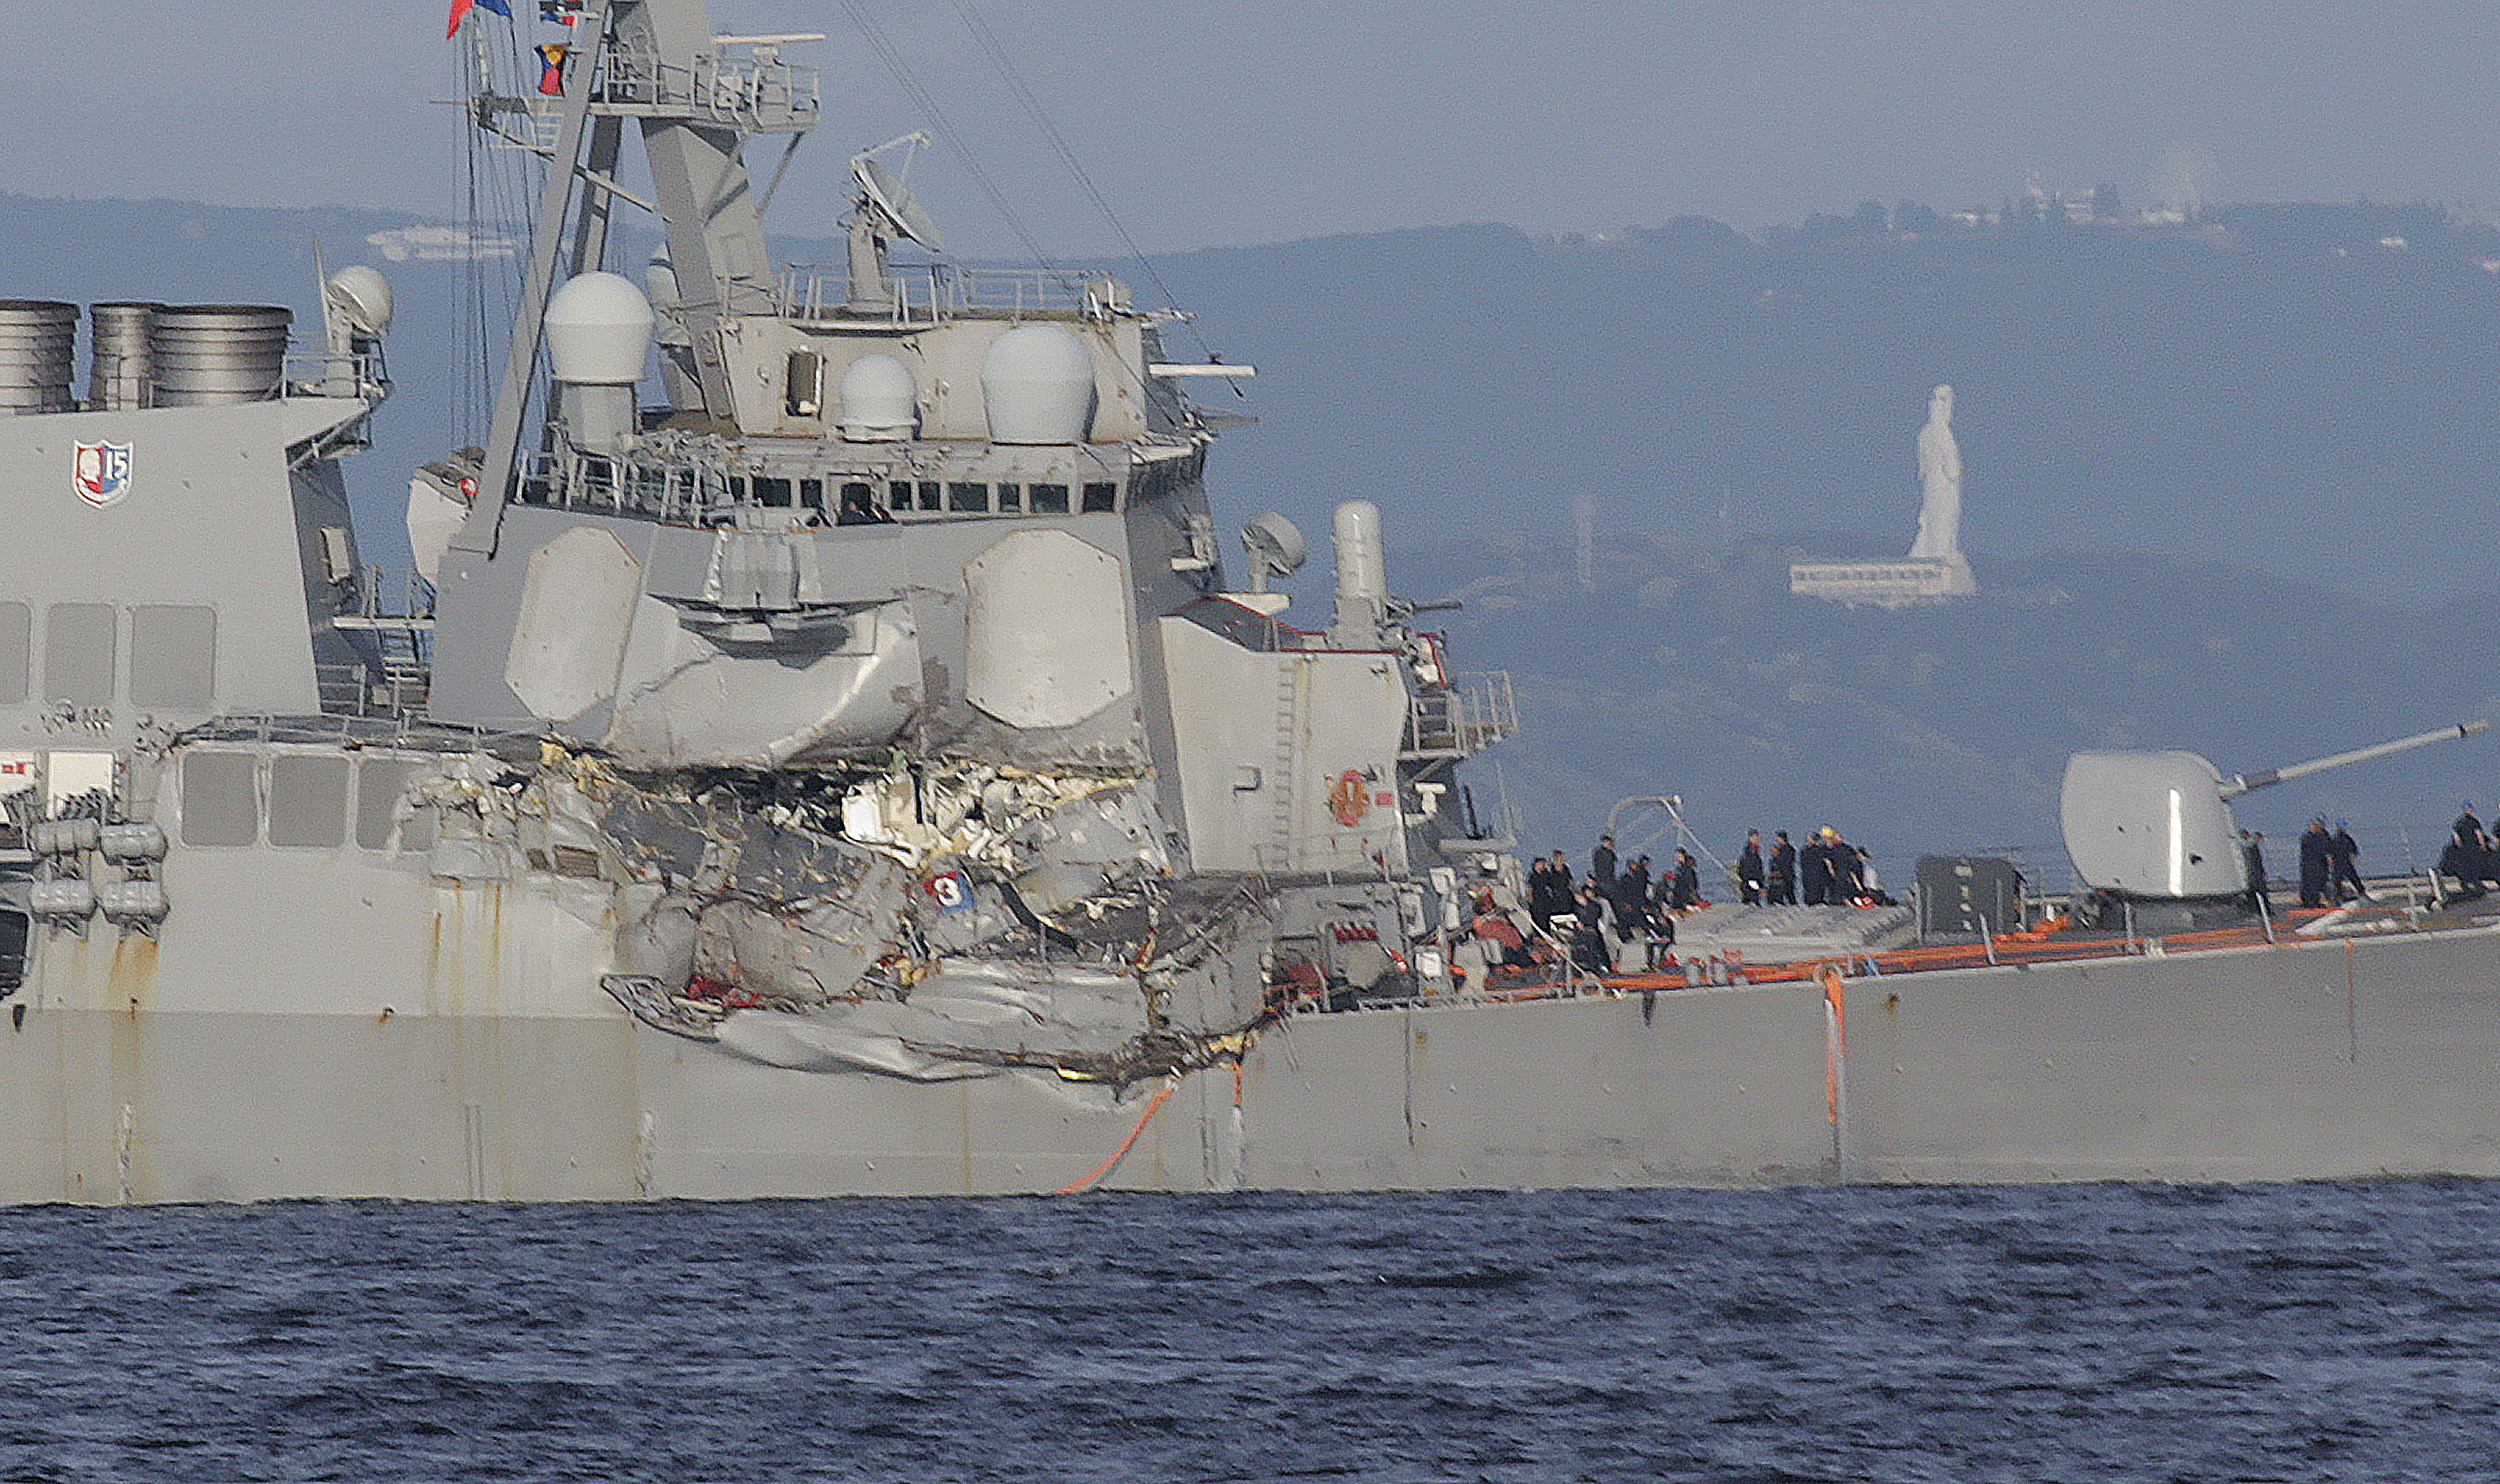 The damaged USS Fitzgerald is seen near the U.S. Naval base in Yokosuka Japan